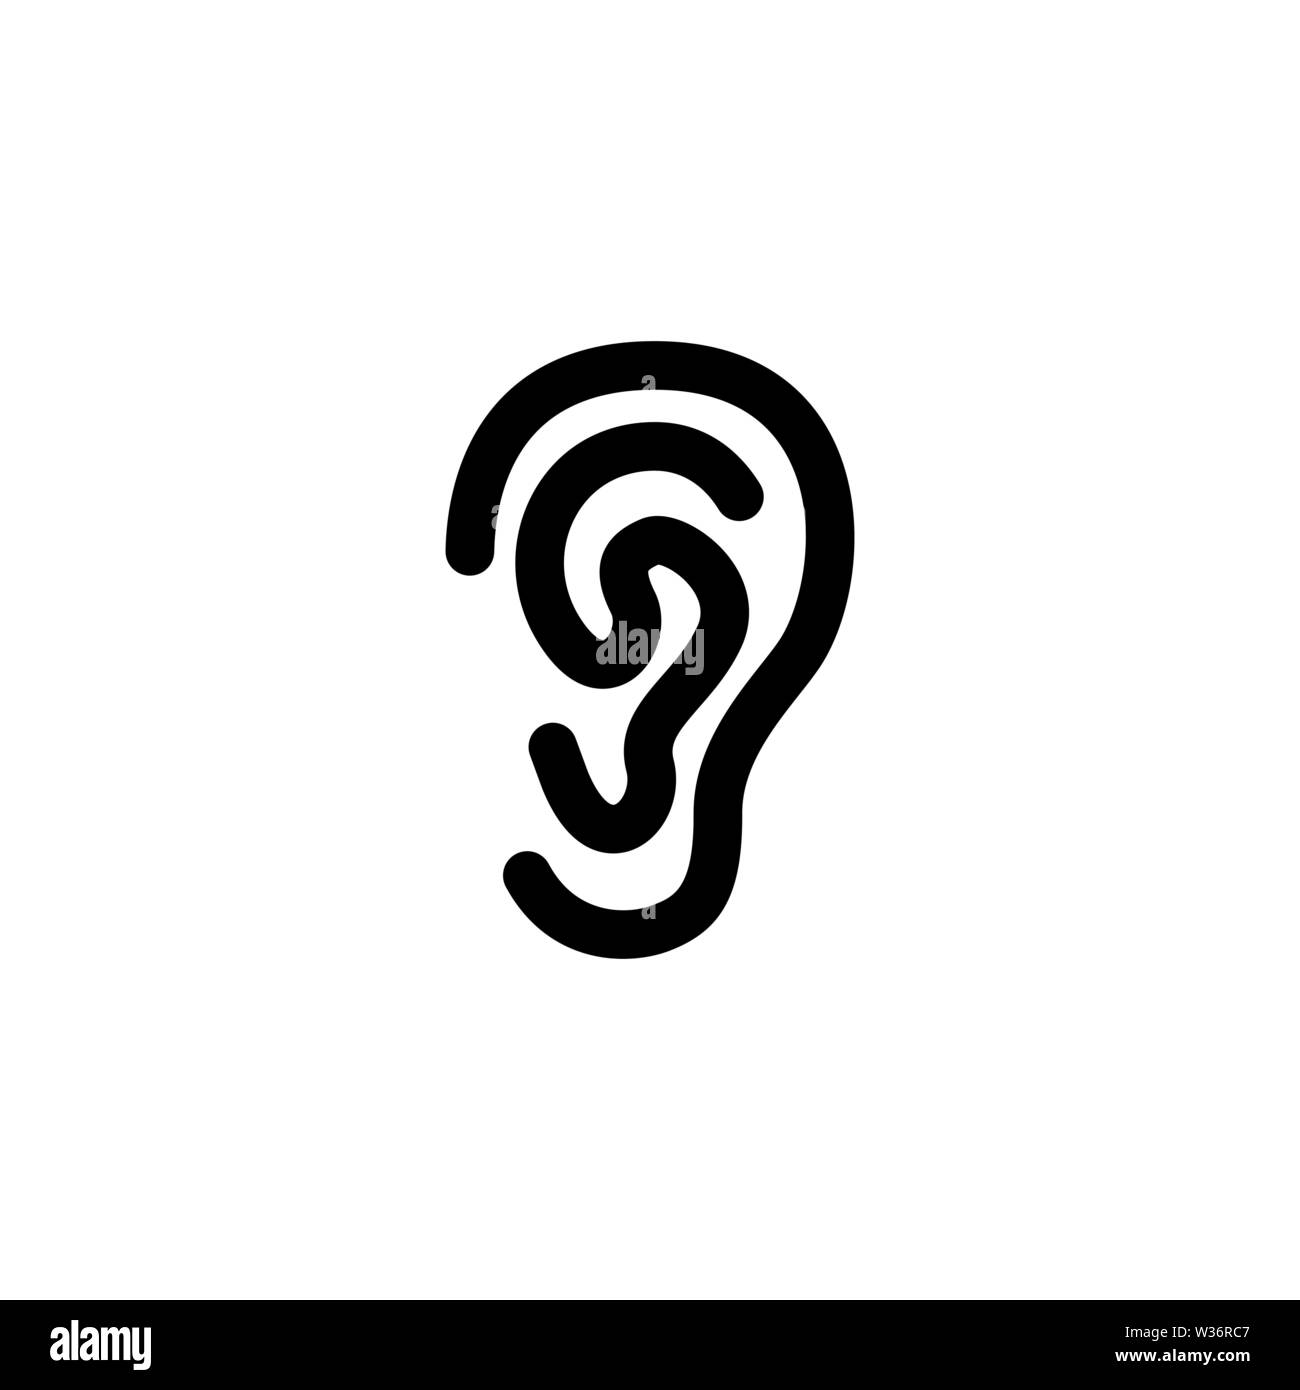 Ear. Flat Vector Icon illustration. Simple black symbol on white background. Ear sign design template for web and mobile UI element - Stock Image